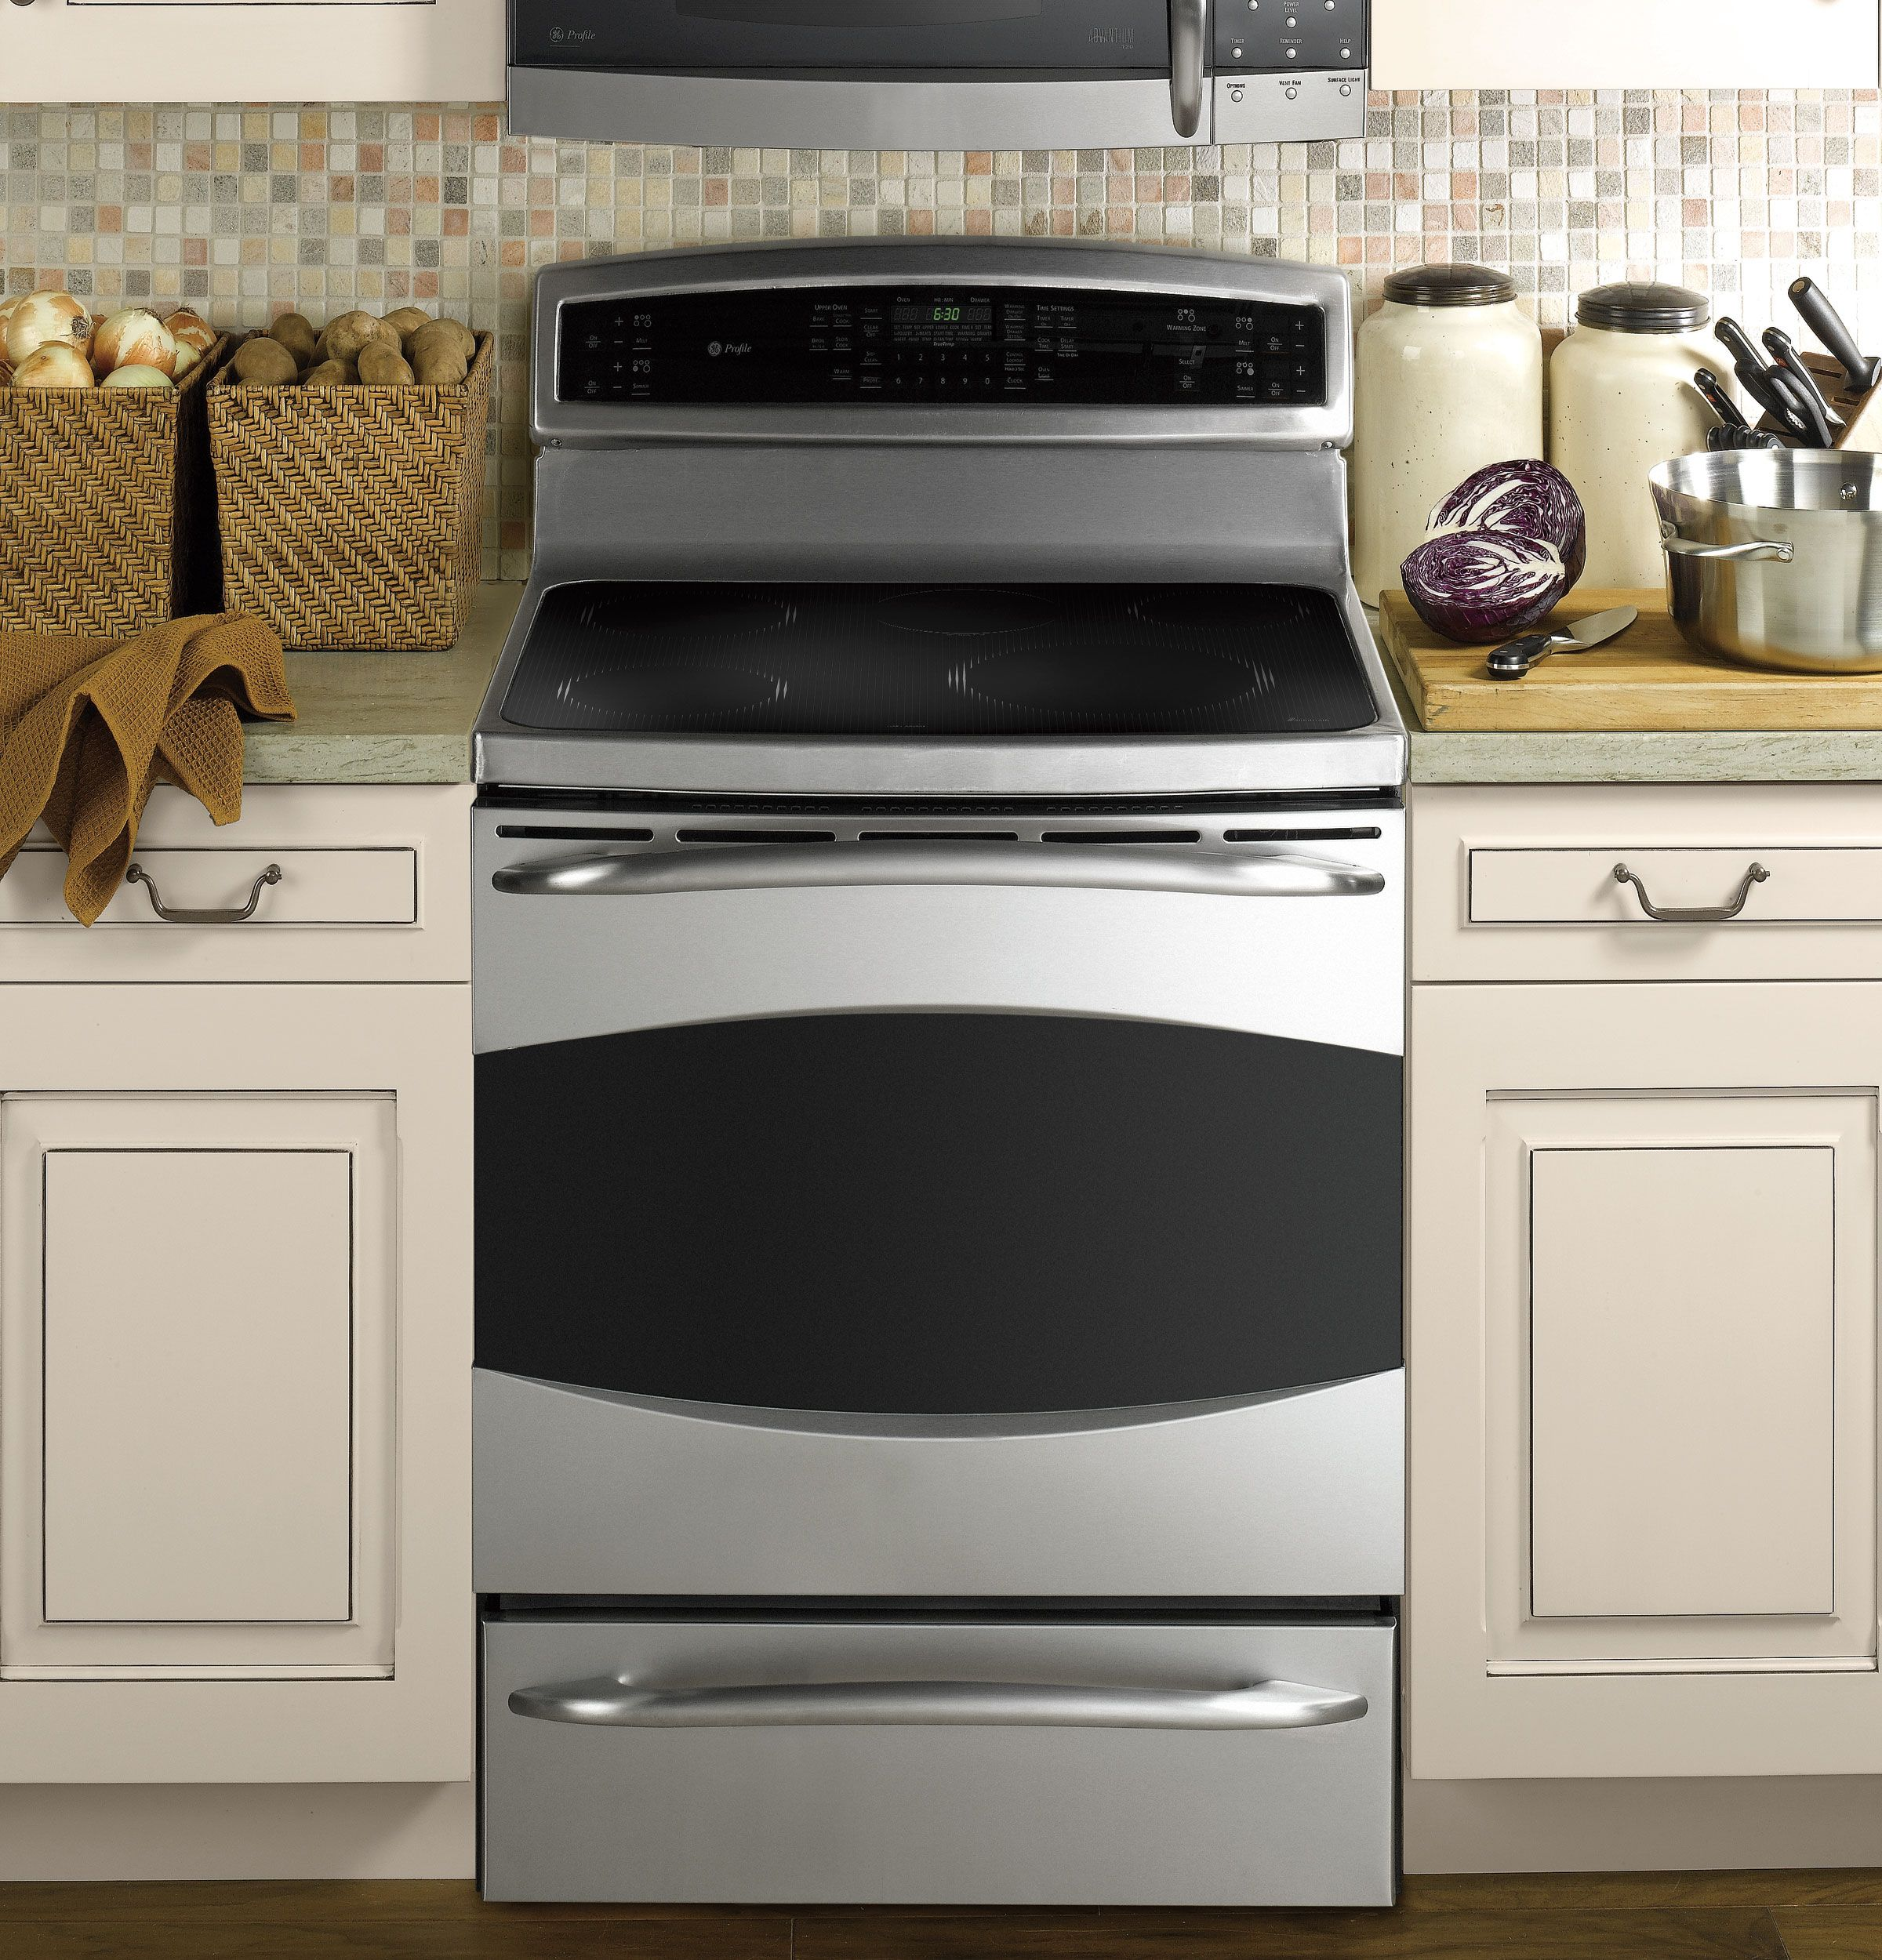 "Free Picture Indoors Contemporary Stove Refrigerator: GE Profile™ 30"" Free-Standing Induction Range"